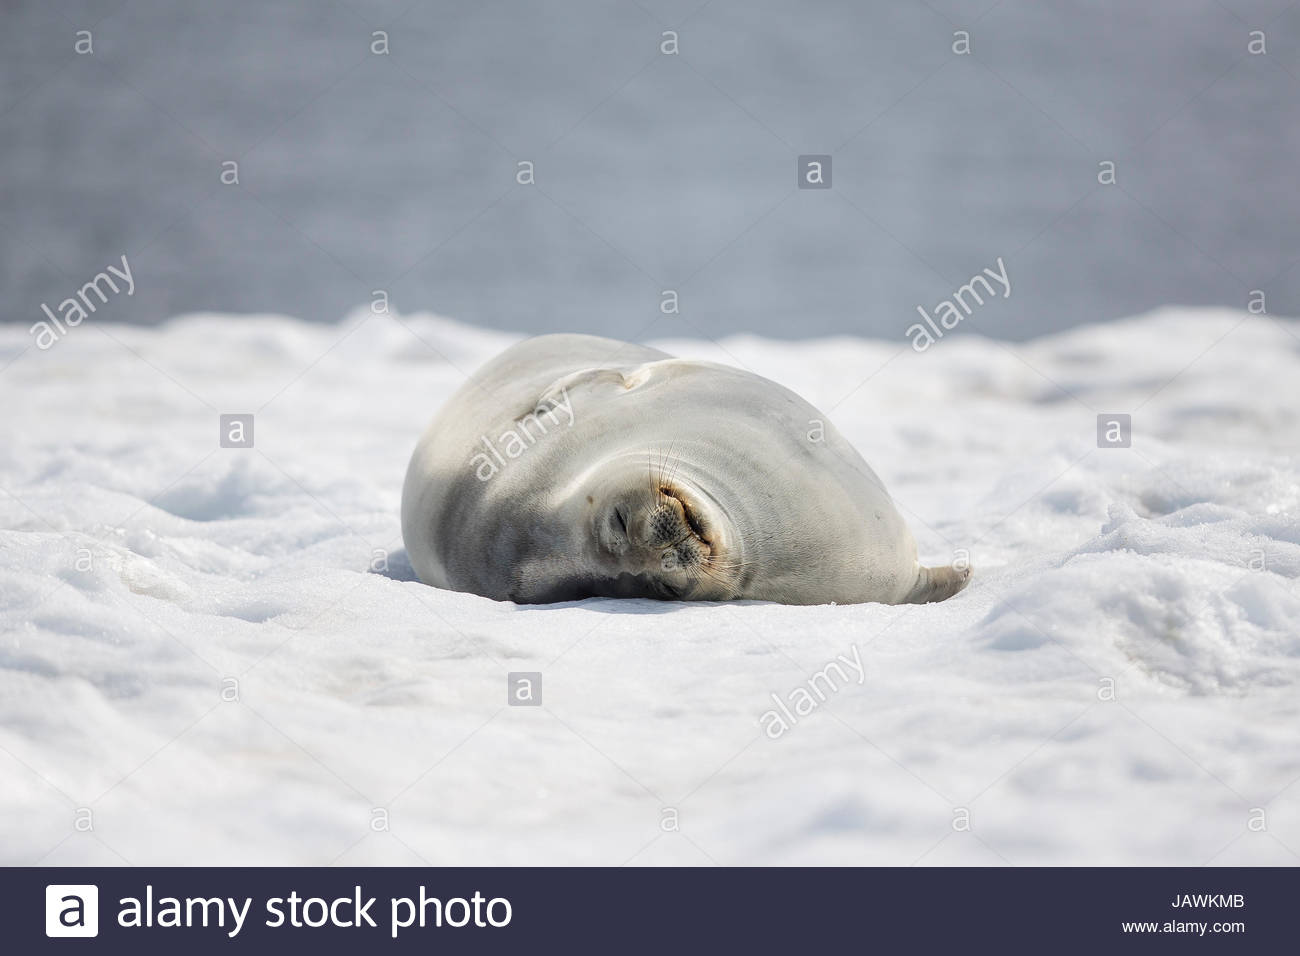 A Weddell seal sleeping in the snow in Antarctica. - Stock Image